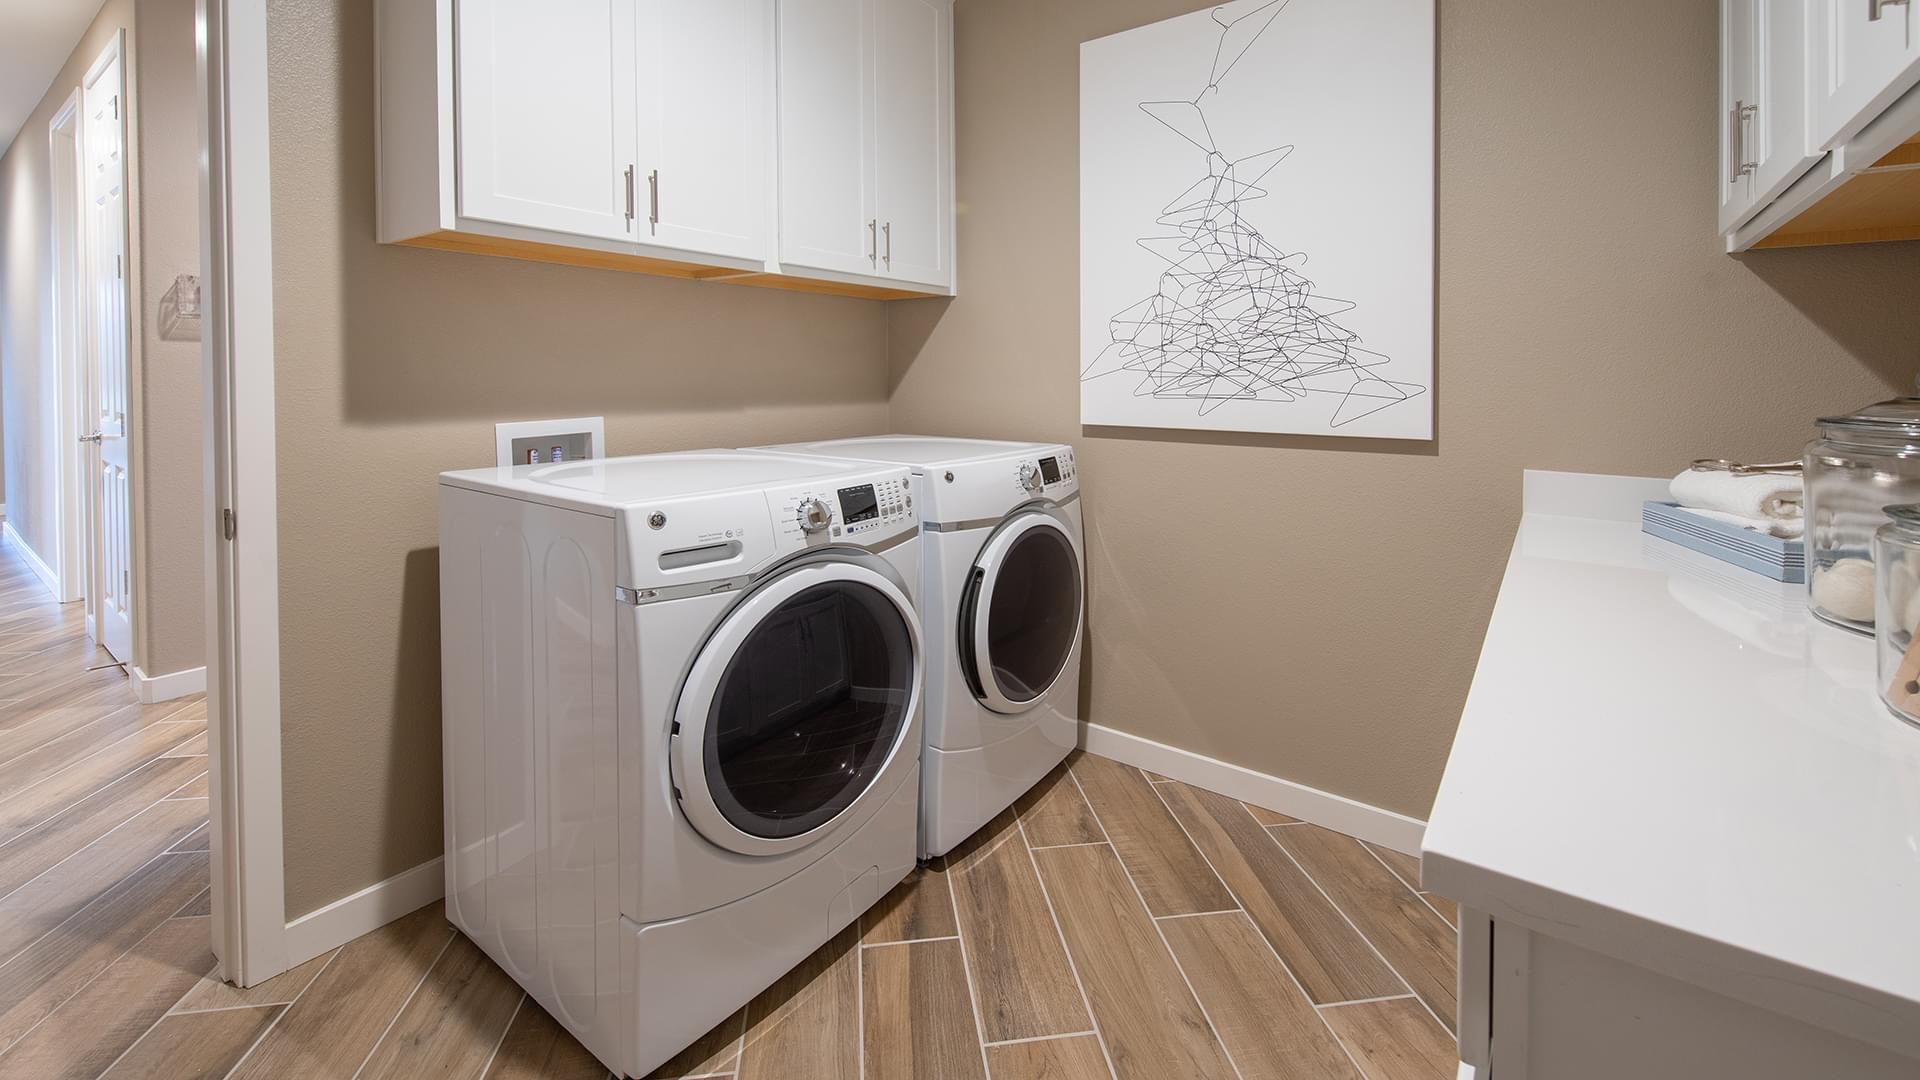 Residence 3 Laundry Room